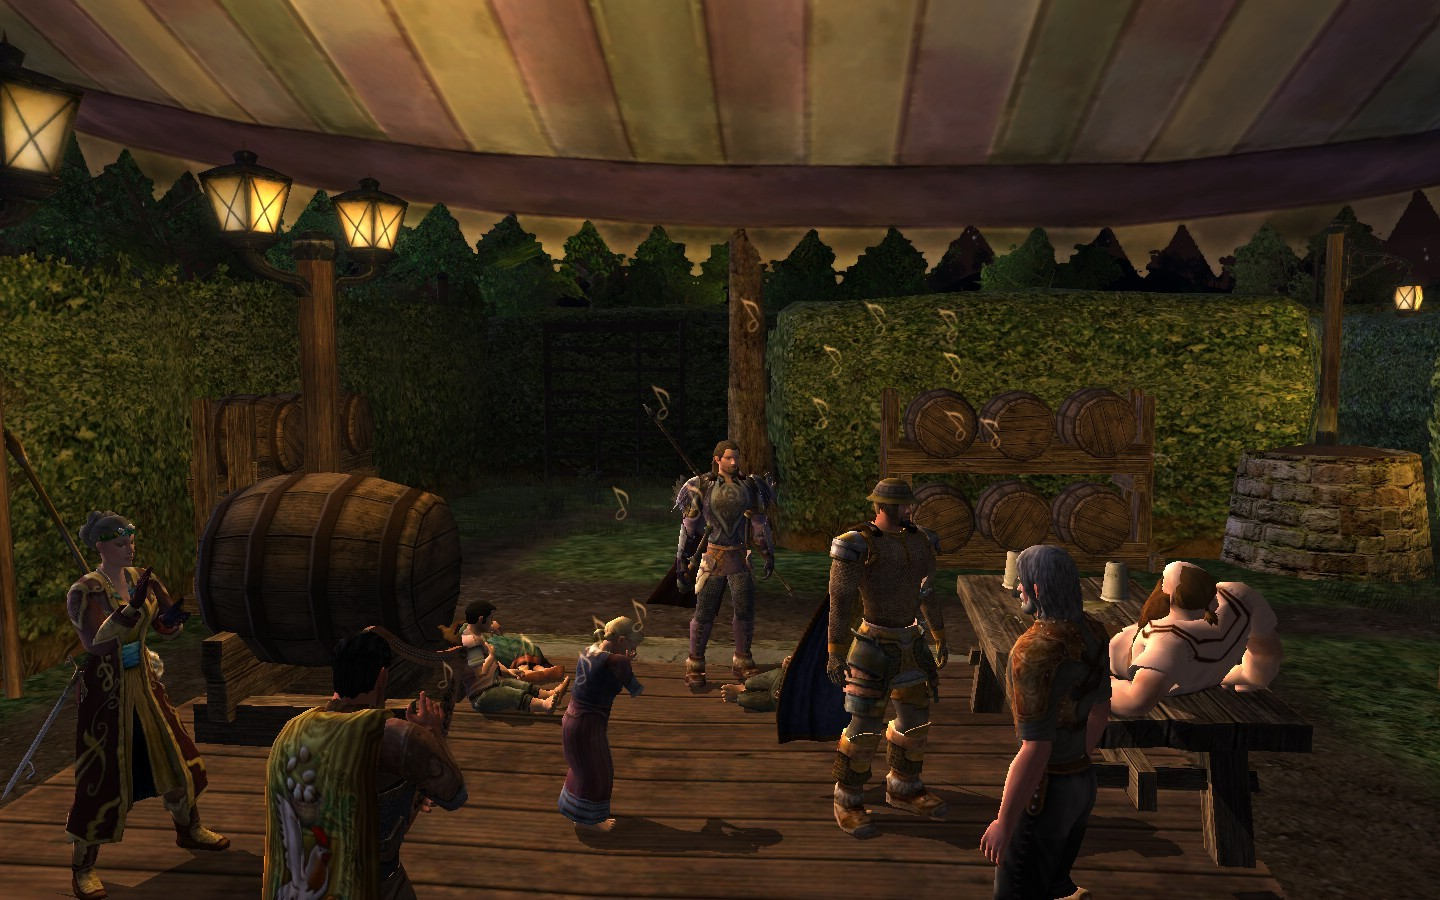 Lord of the Rings Online - Party inside the Spring Festival Hedge Maze